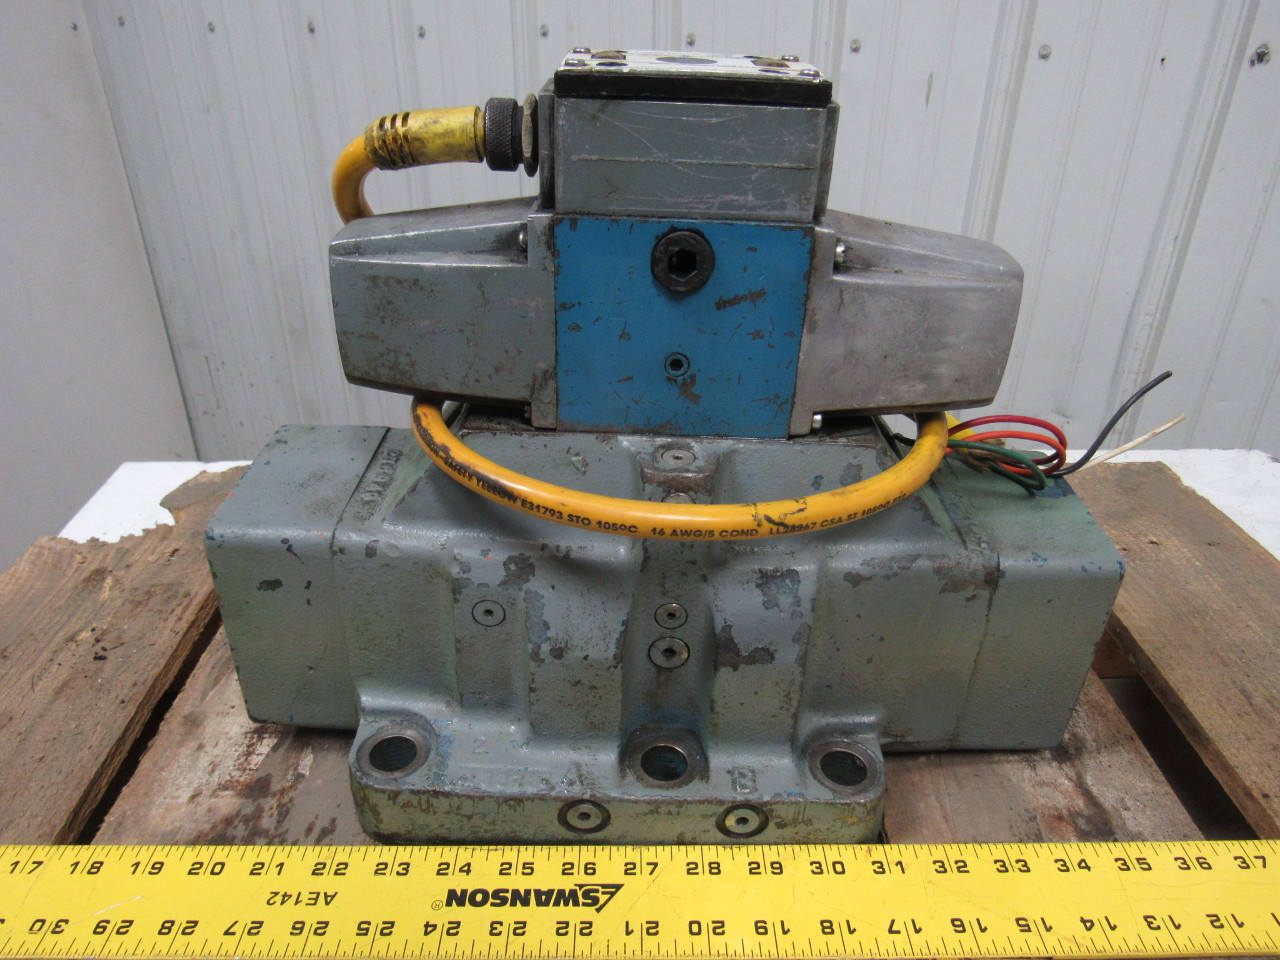 Sperry Vickers Industrial Hydraulic Manual